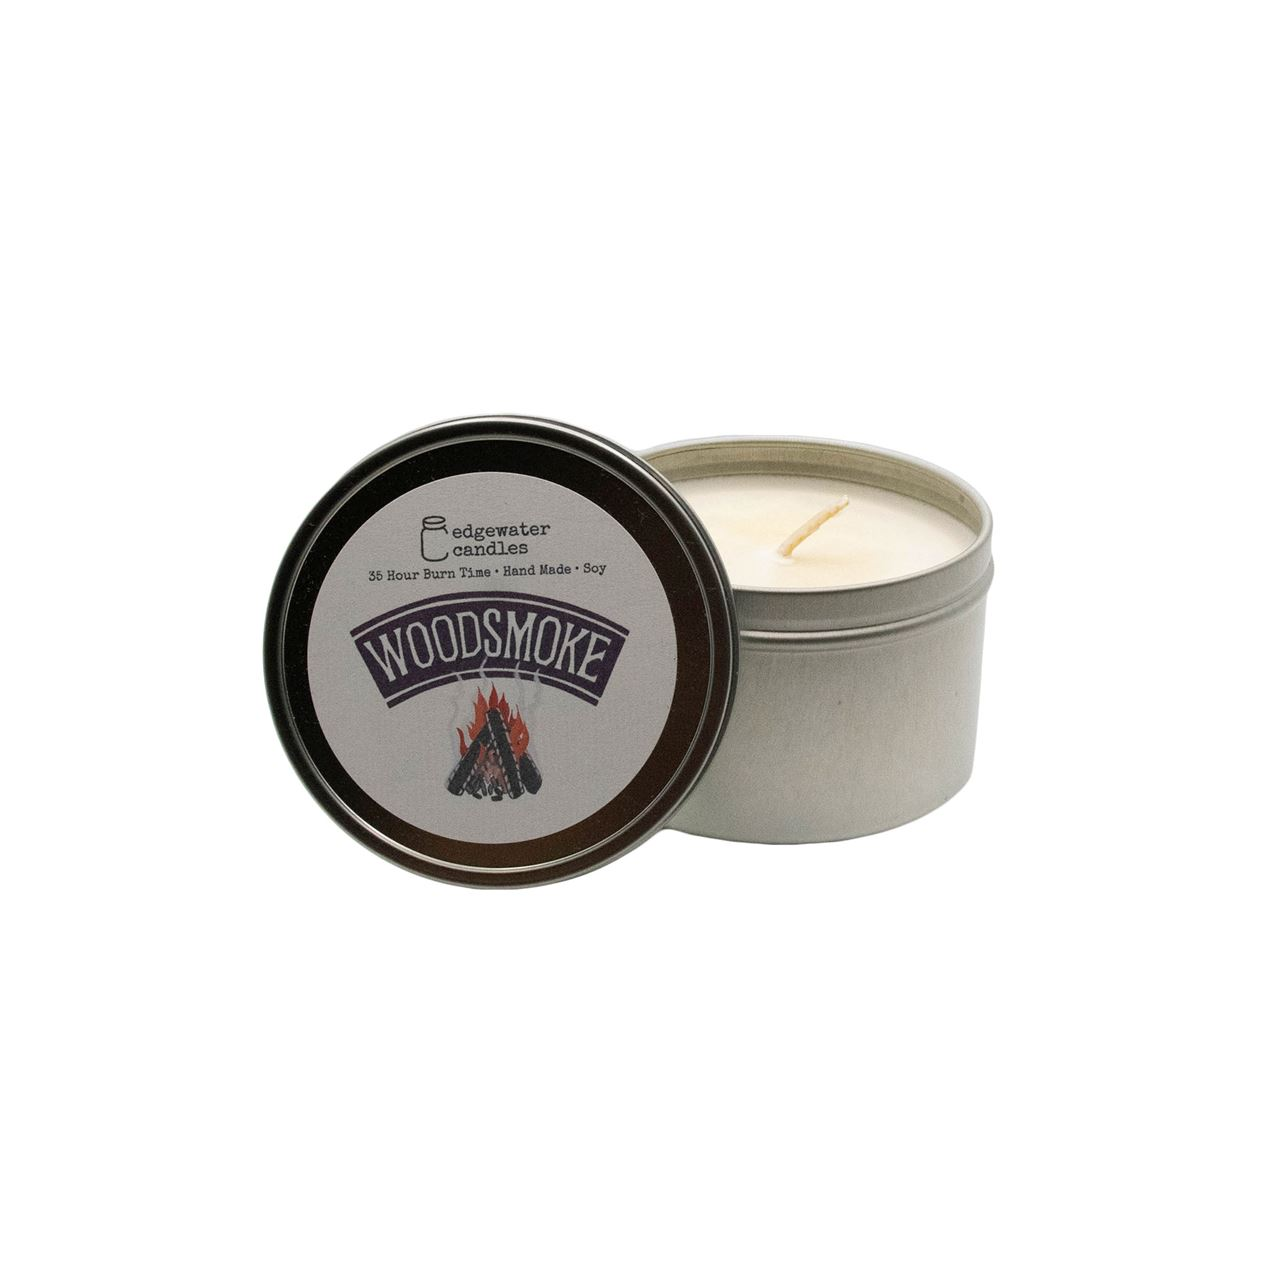 Woodsmoke Travel Tin by Edgewater Candles